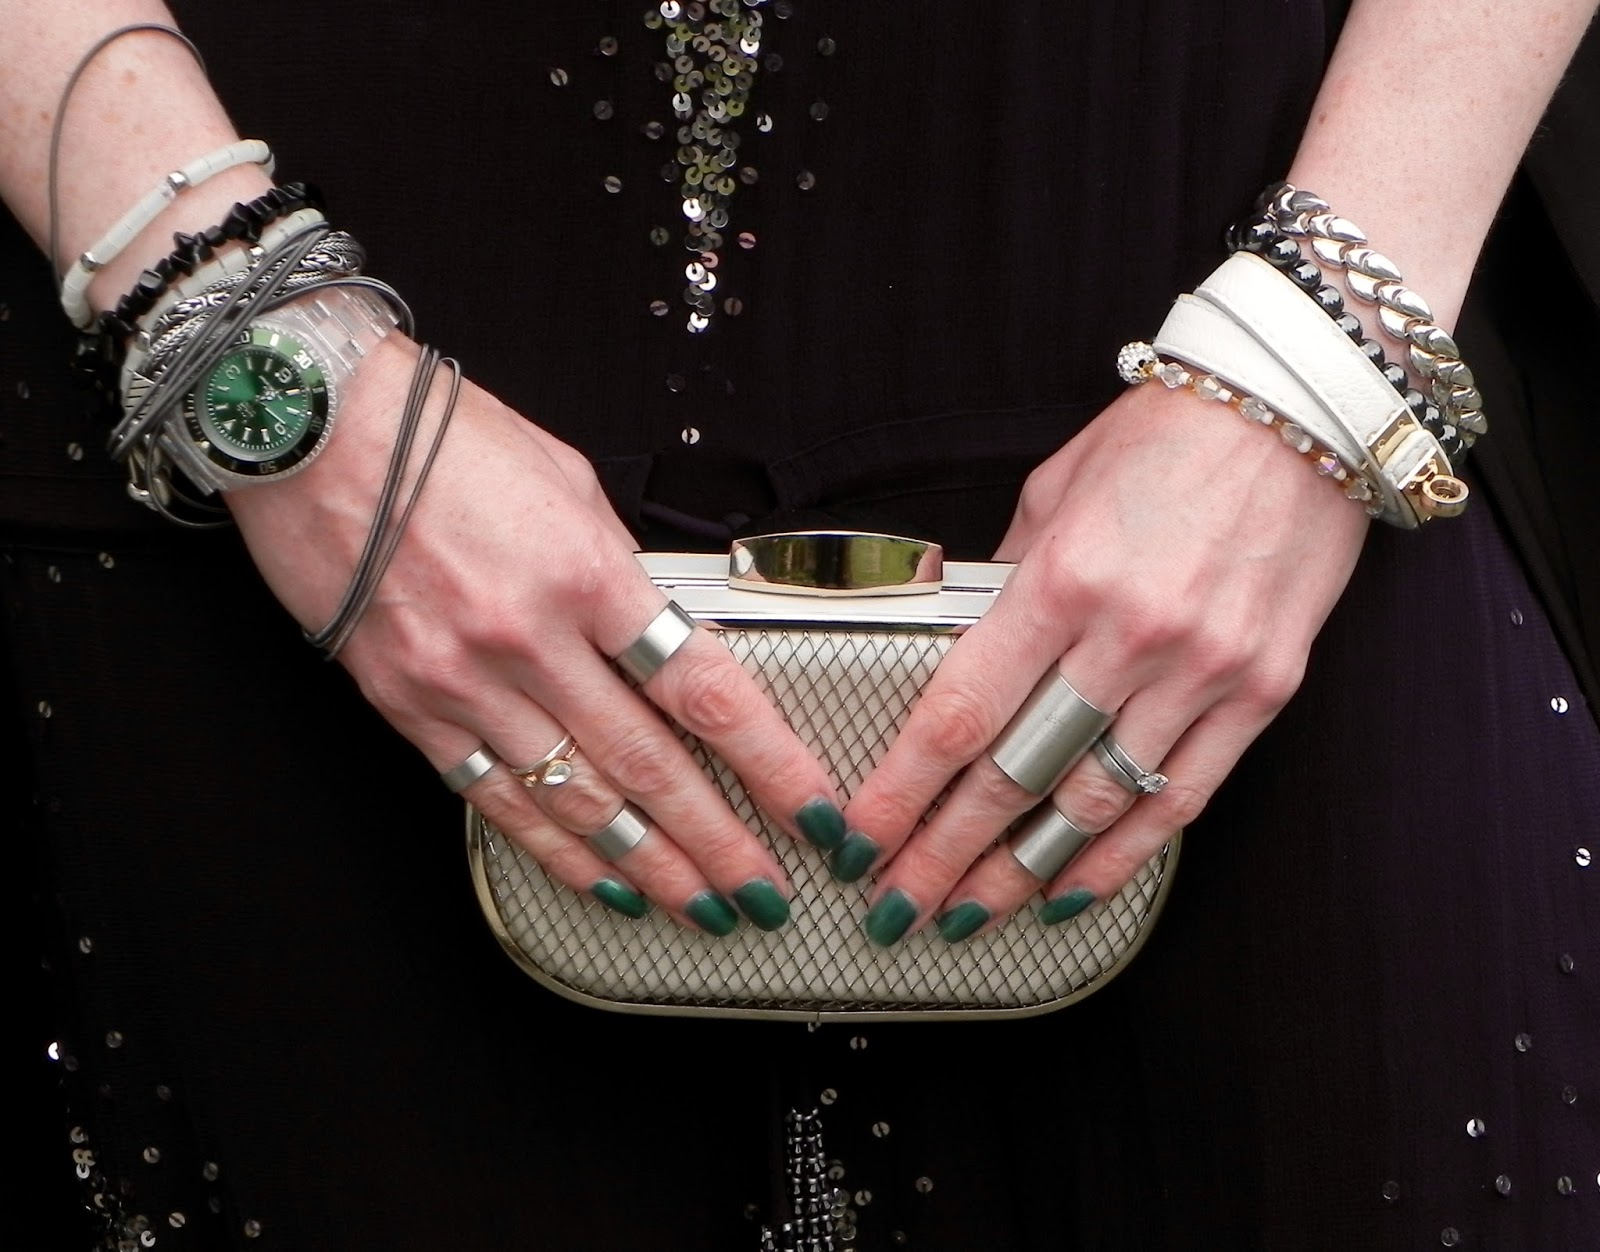 Clutch bag a multi rings, midi rings.